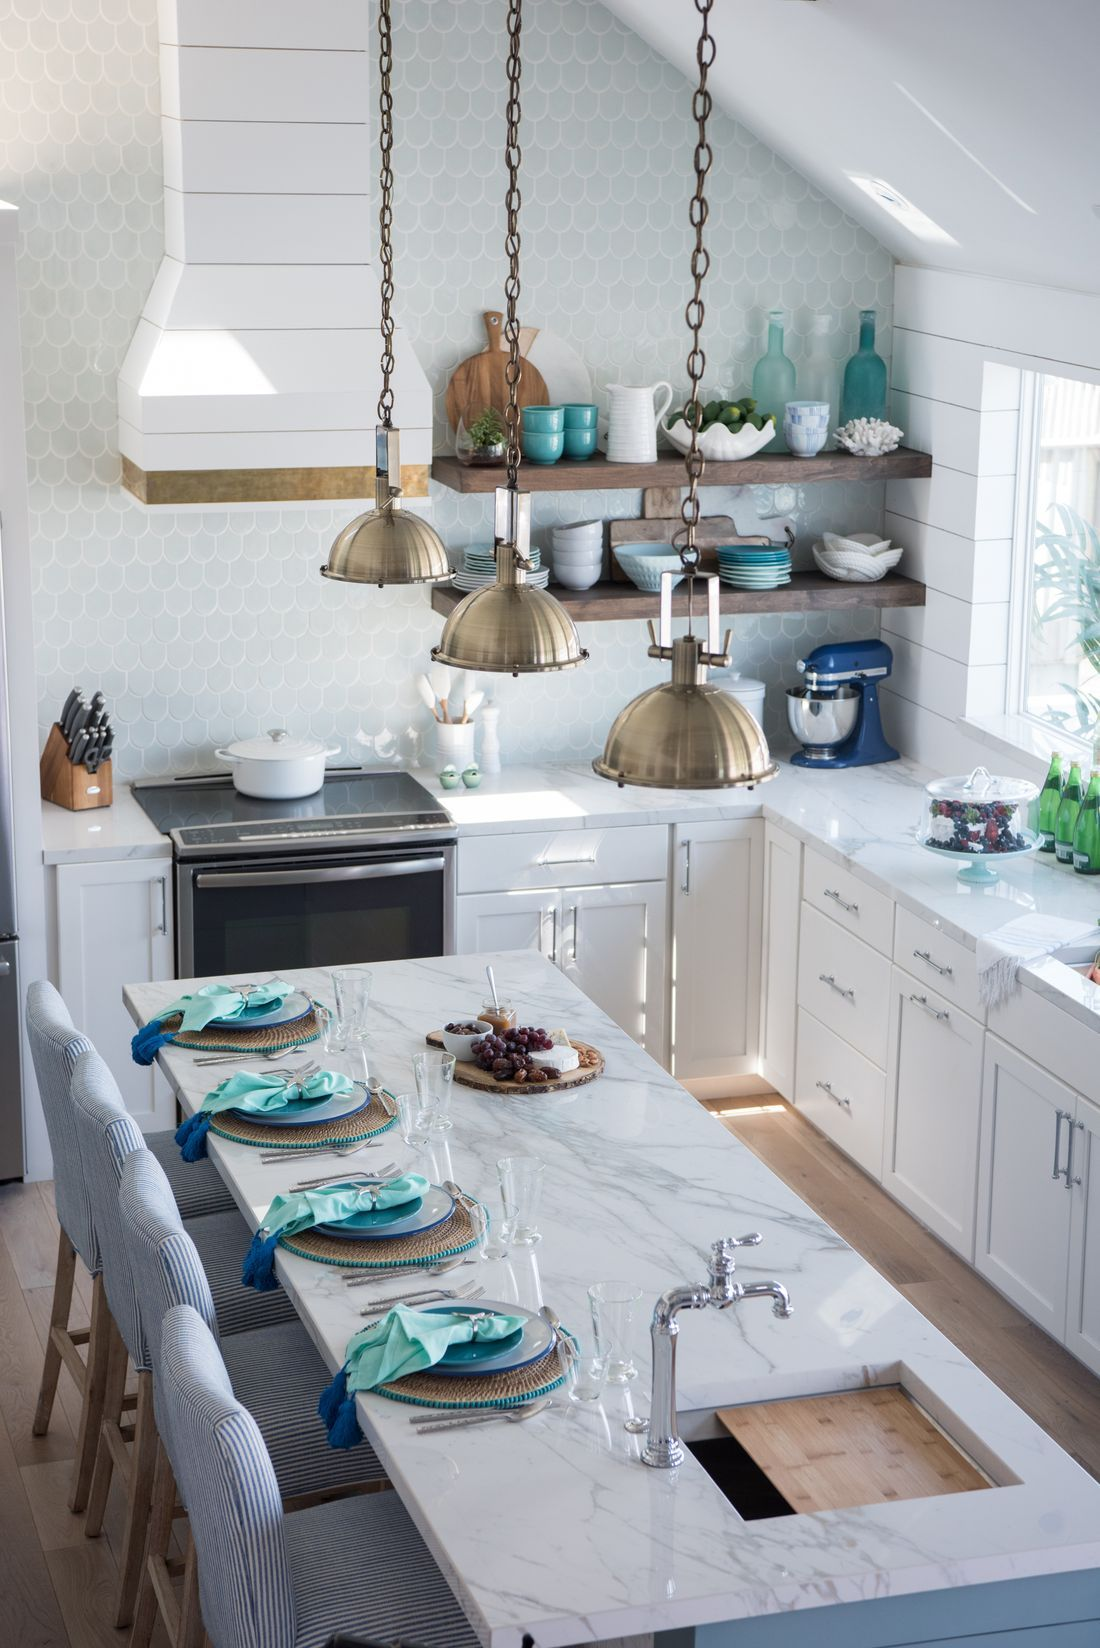 a charming coastal kitchen with white cabients, an aqua scale tile backsplash, a marble kitchen island and blue striped chairs